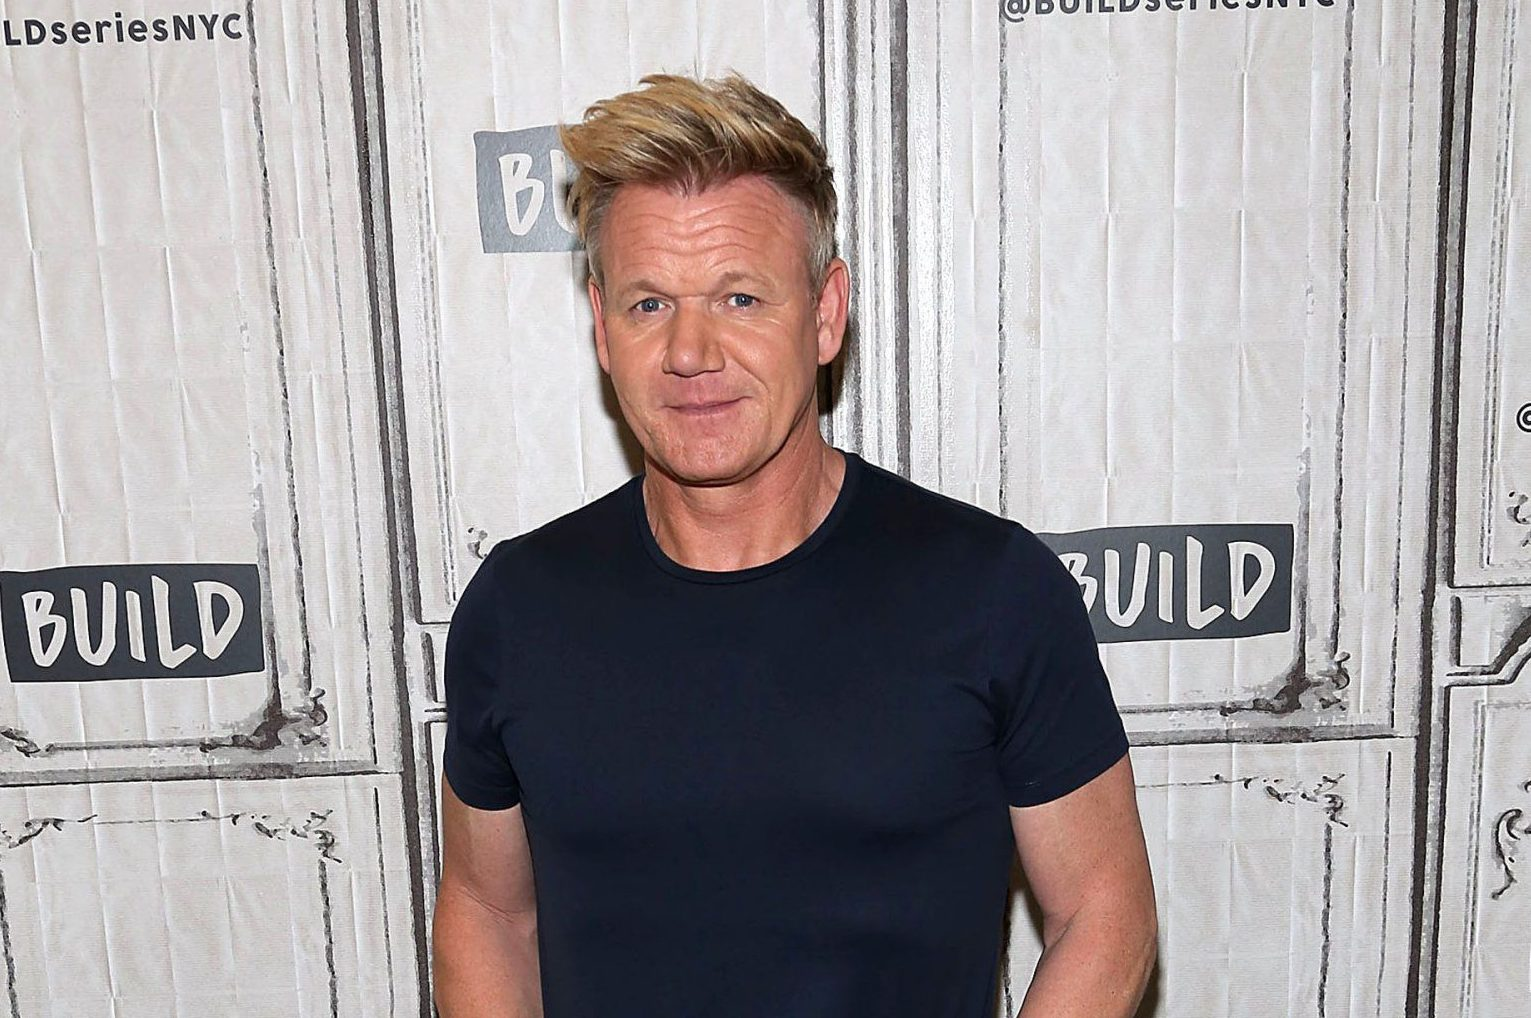 """NEW YORK, NY - JULY 09: Chef Gordon Ramsay visits Build Series to discuss """"24 Hours to Hell and Back"""" at Build Studio on July 9, 2018 in New York City. (Photo by Manny Carabel/WireImage)"""